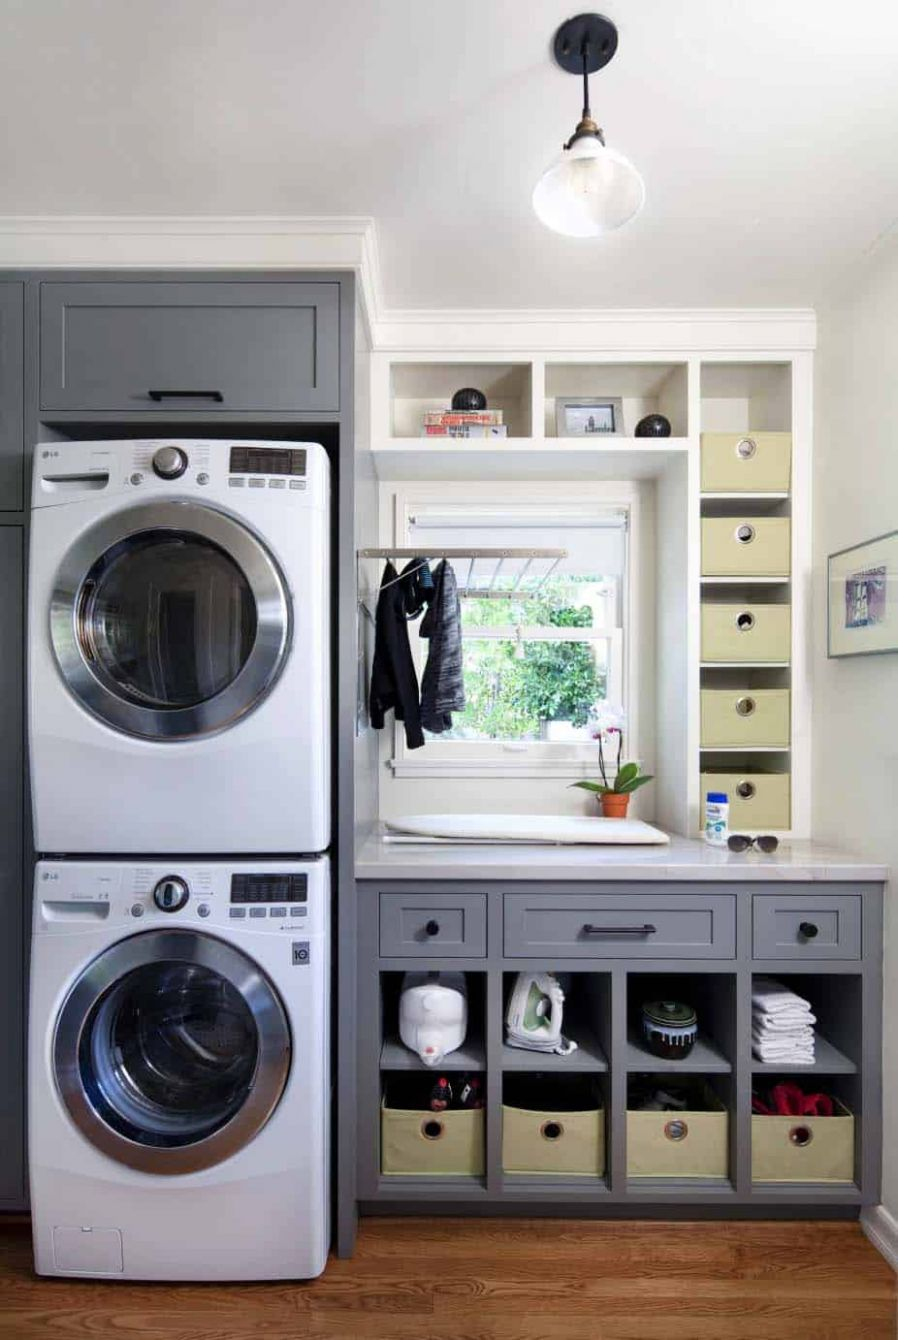 12 Functional And Stylish Laundry Room Design Ideas To Inspire